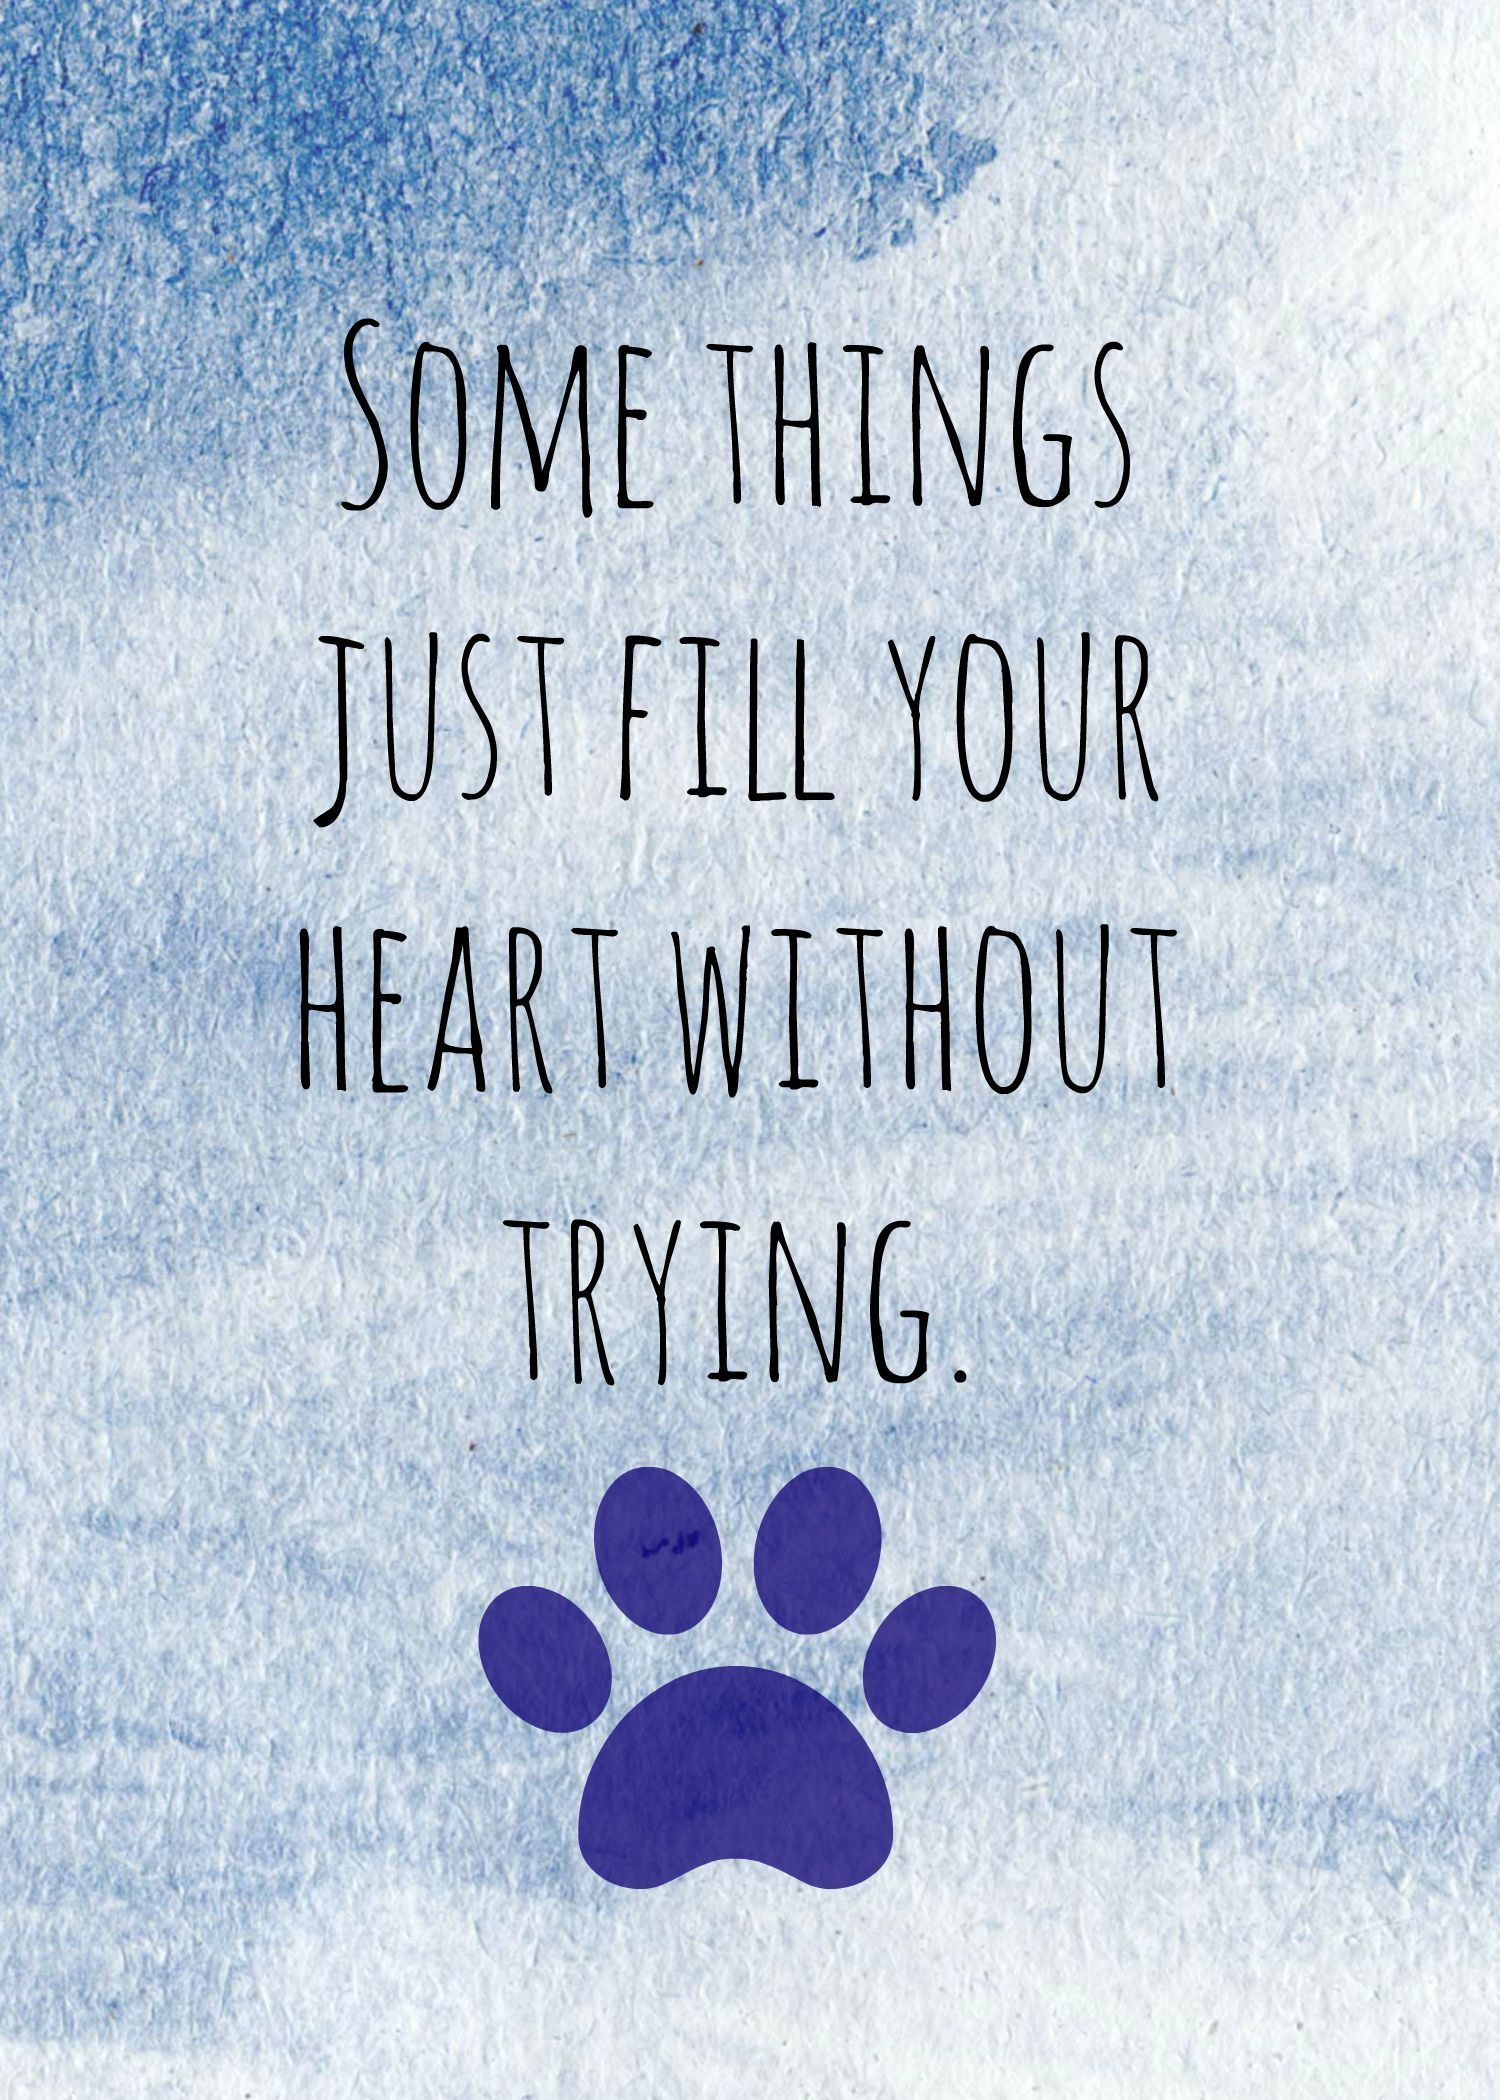 Quotes About Pets: Some Things... #dog #quote #saying